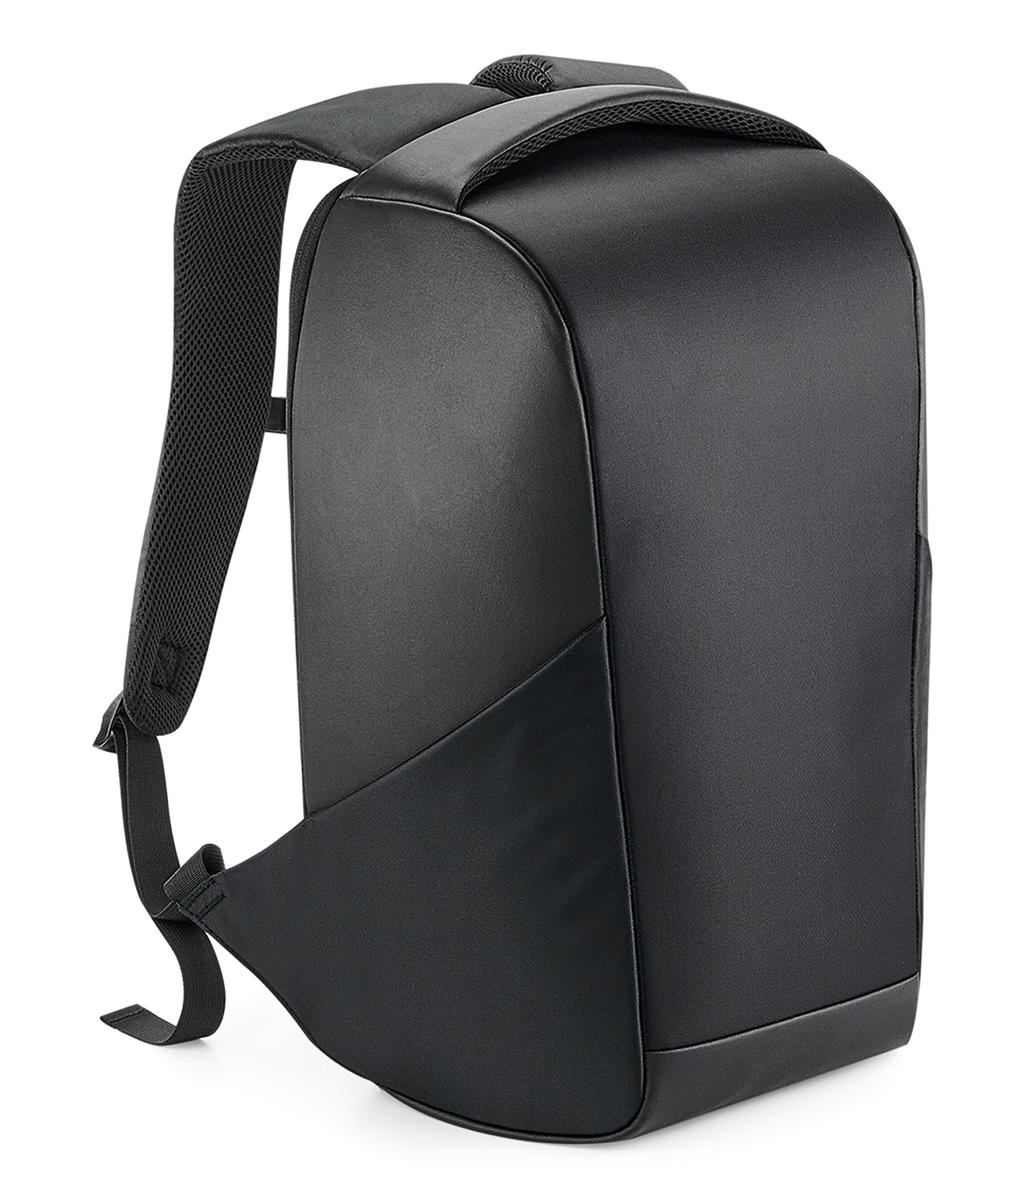 Project Charge Security Backpack XL - zvìtšit obrázek